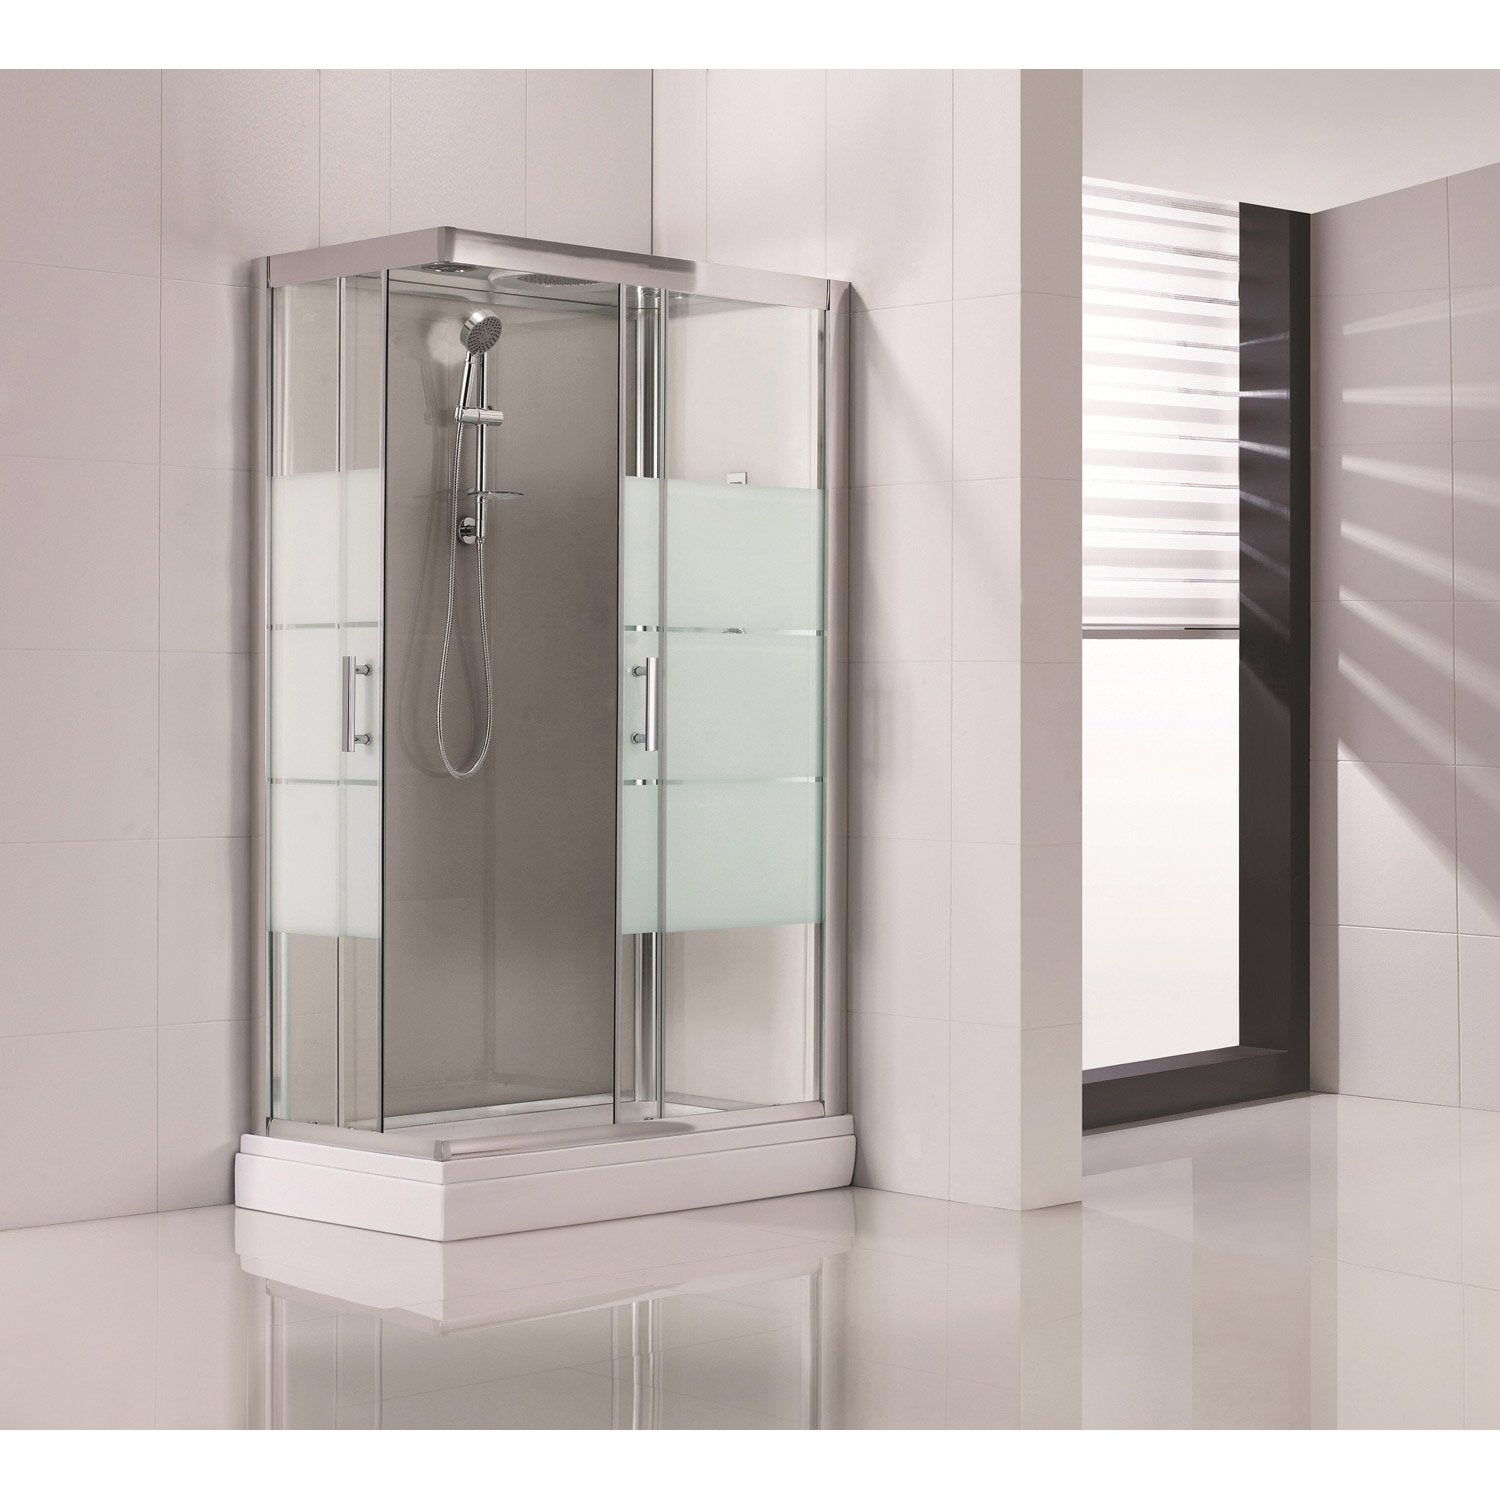 Souvent Cabine de douche rectangulaire 120x80 cm, Optima2 grise | Leroy Merlin CV53